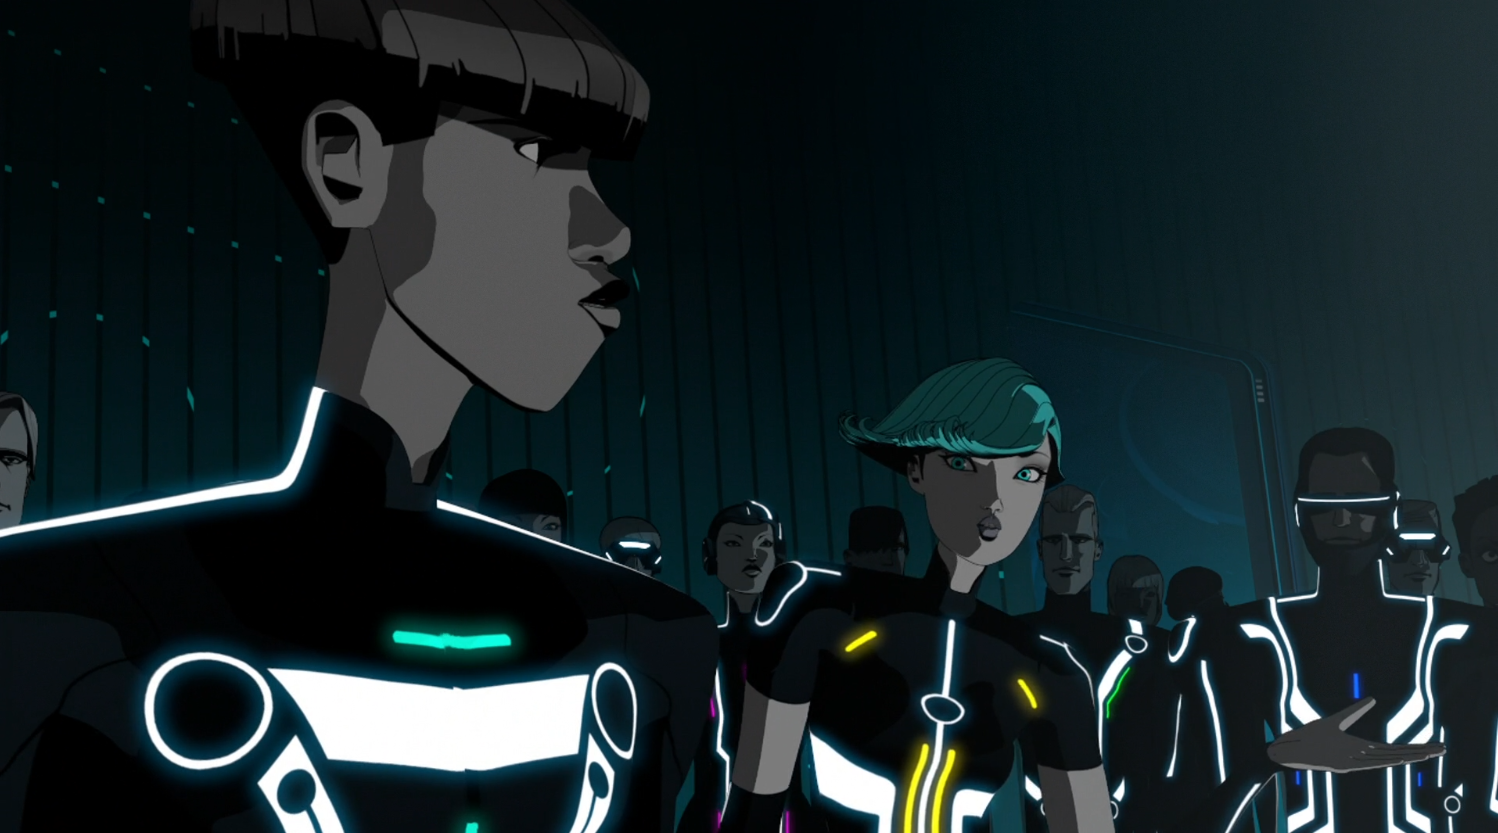 Mara blames Tron - Terminal - Terminal - Tron: Uprising